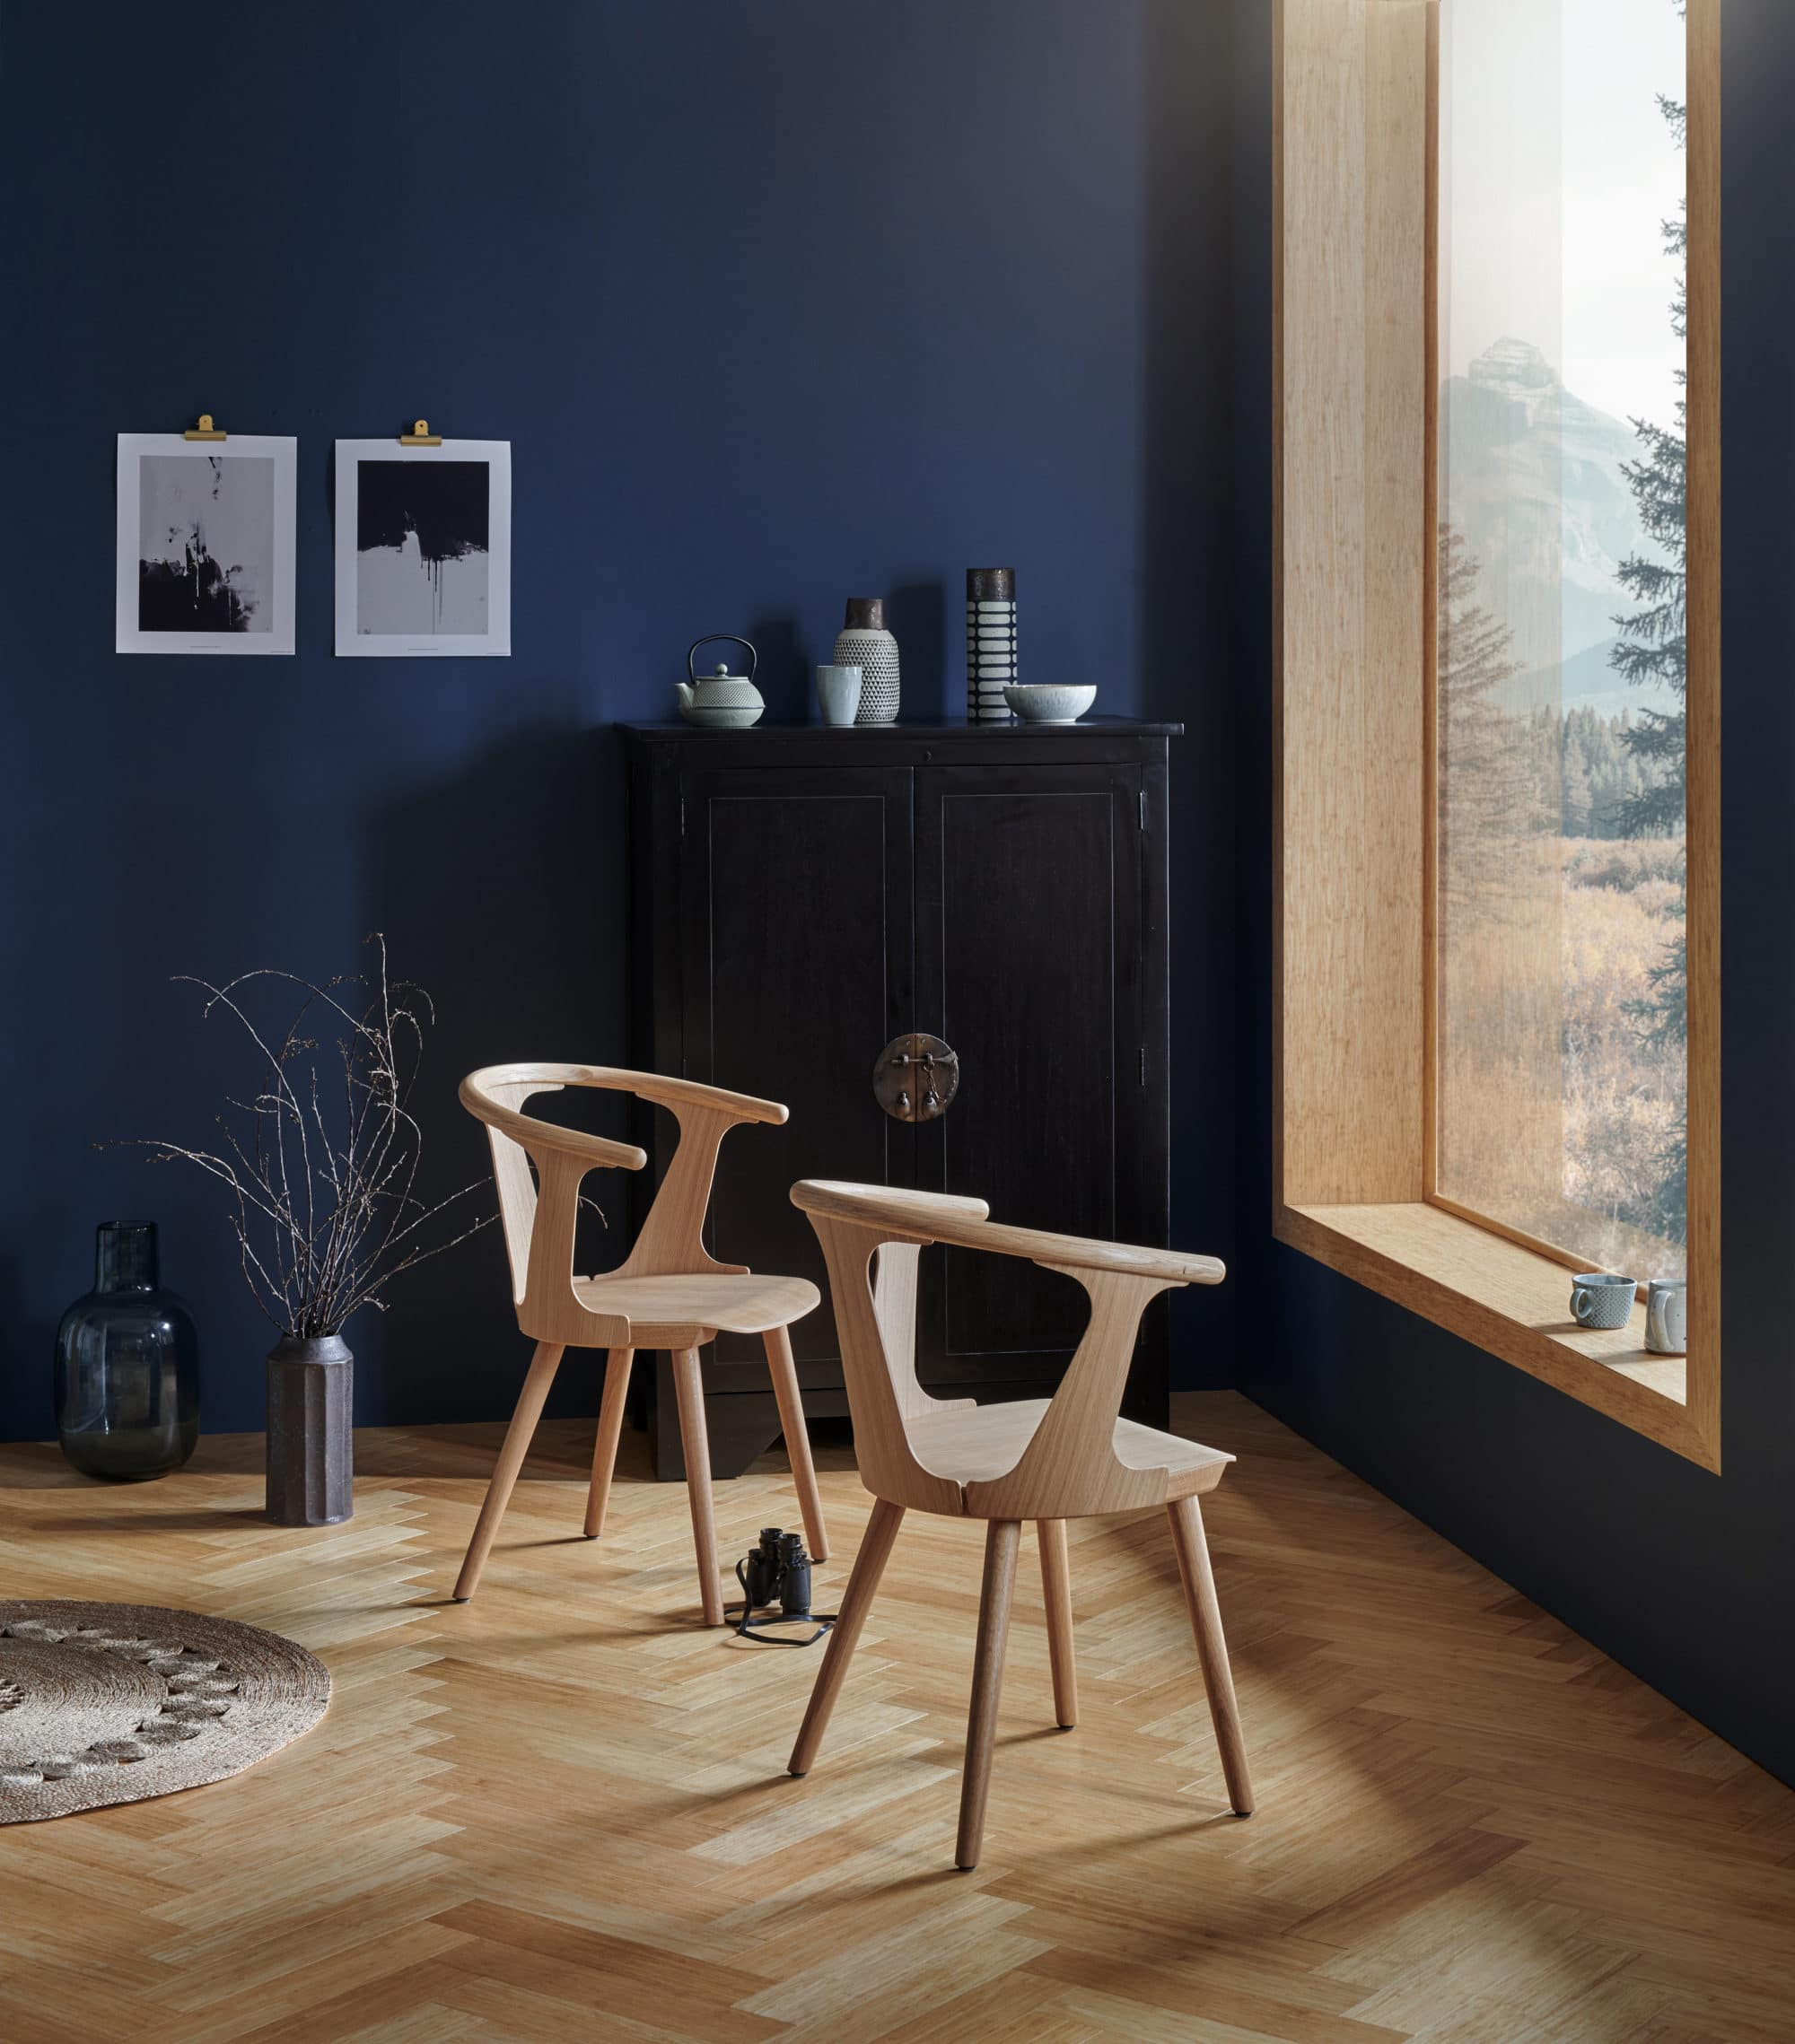 Sitting room with blue wall